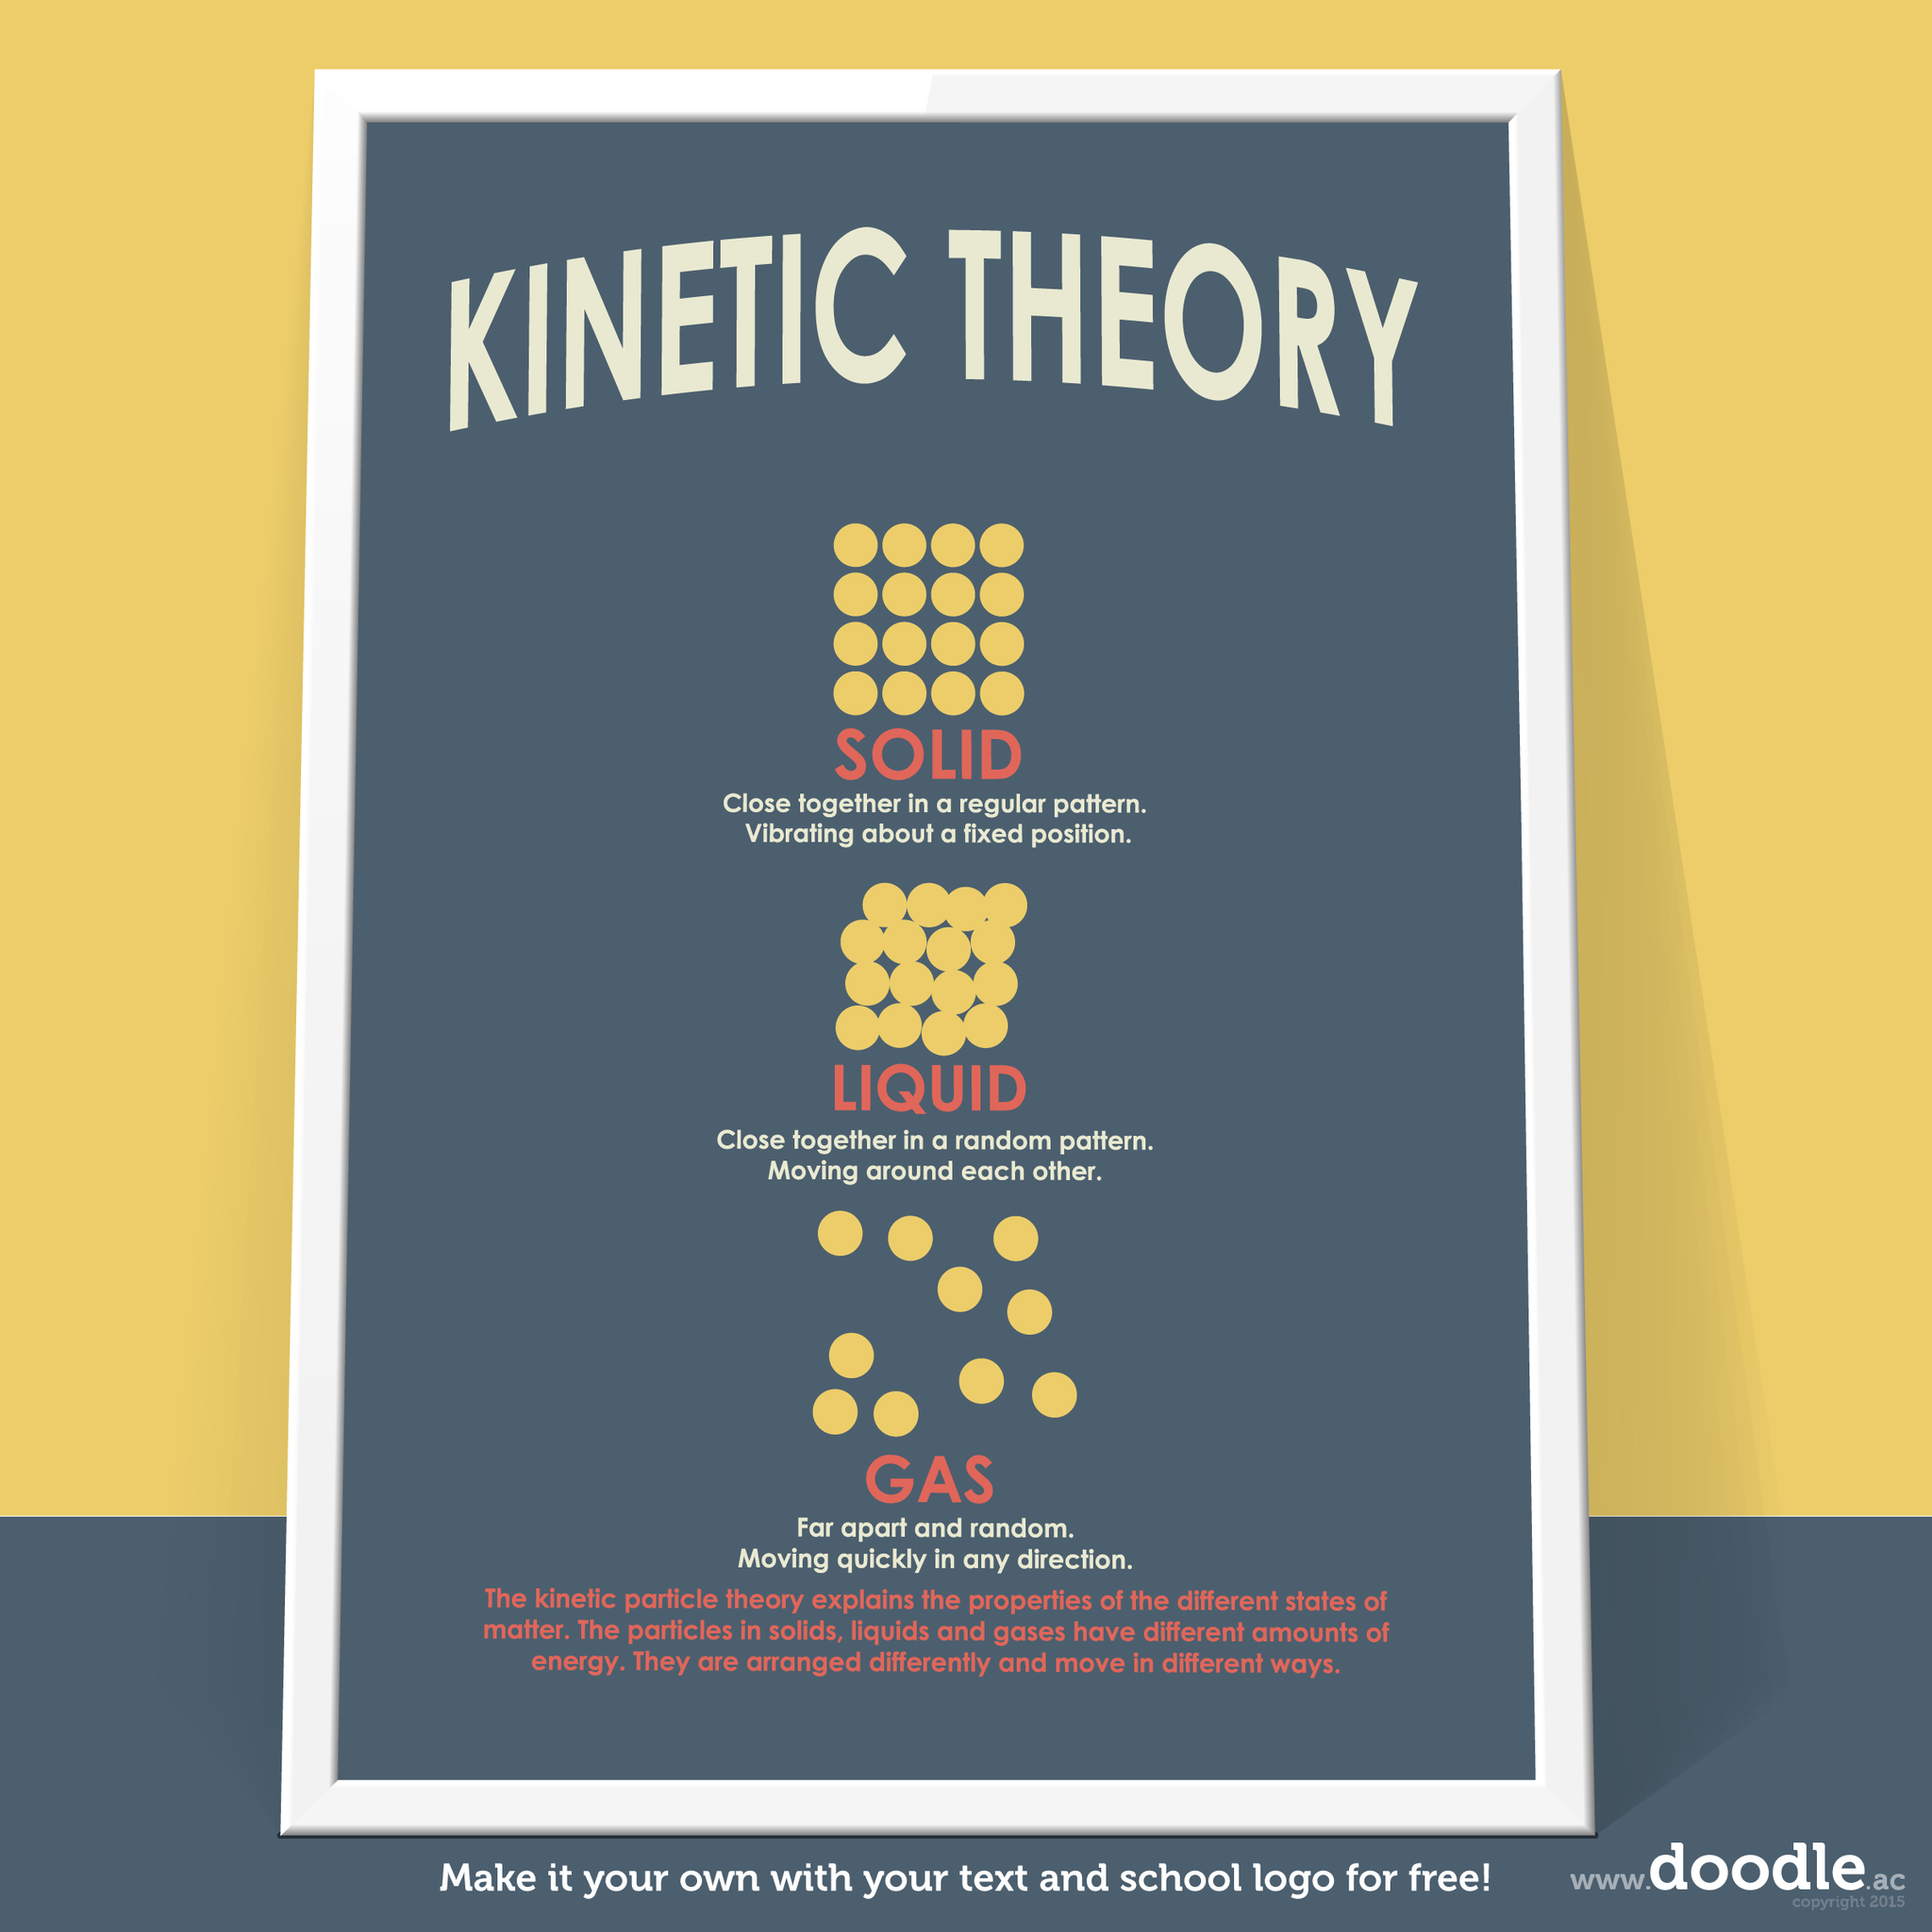 kinetic theory - doodle education